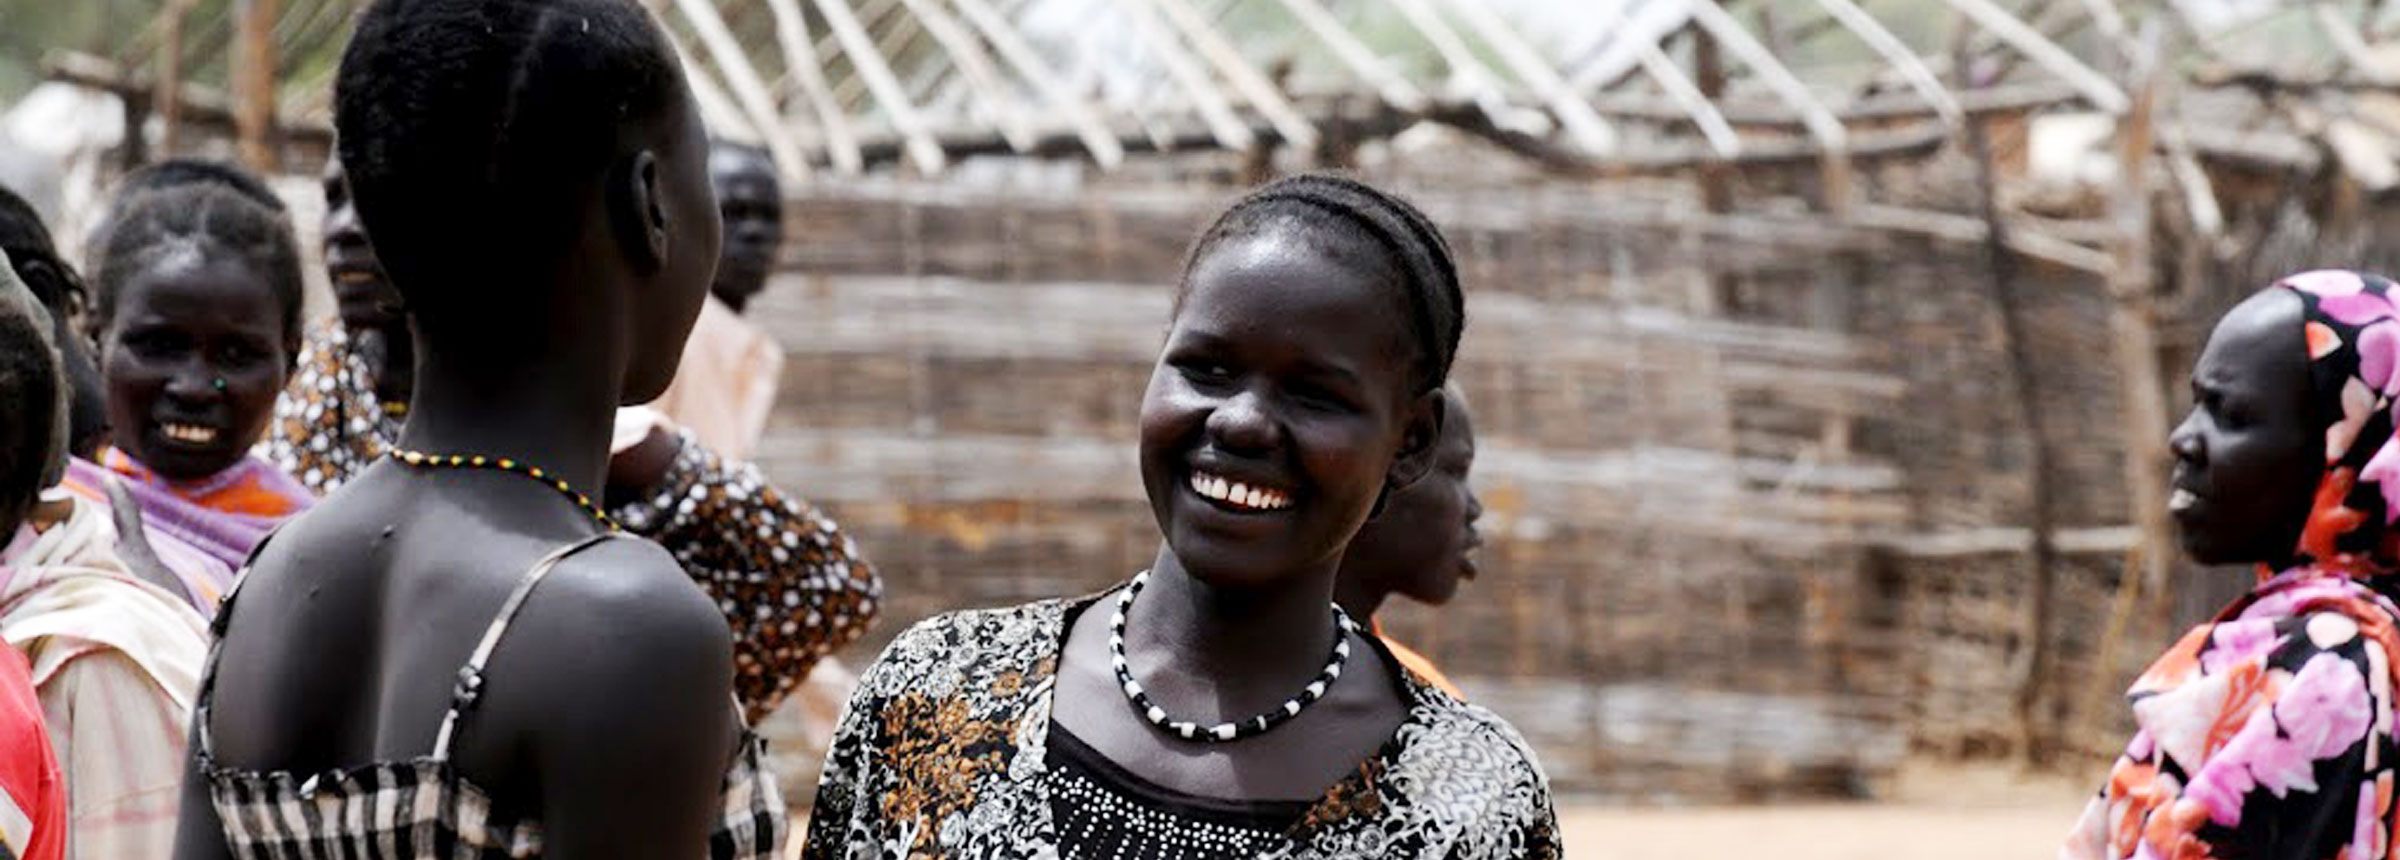 South Sudanese girl smiling